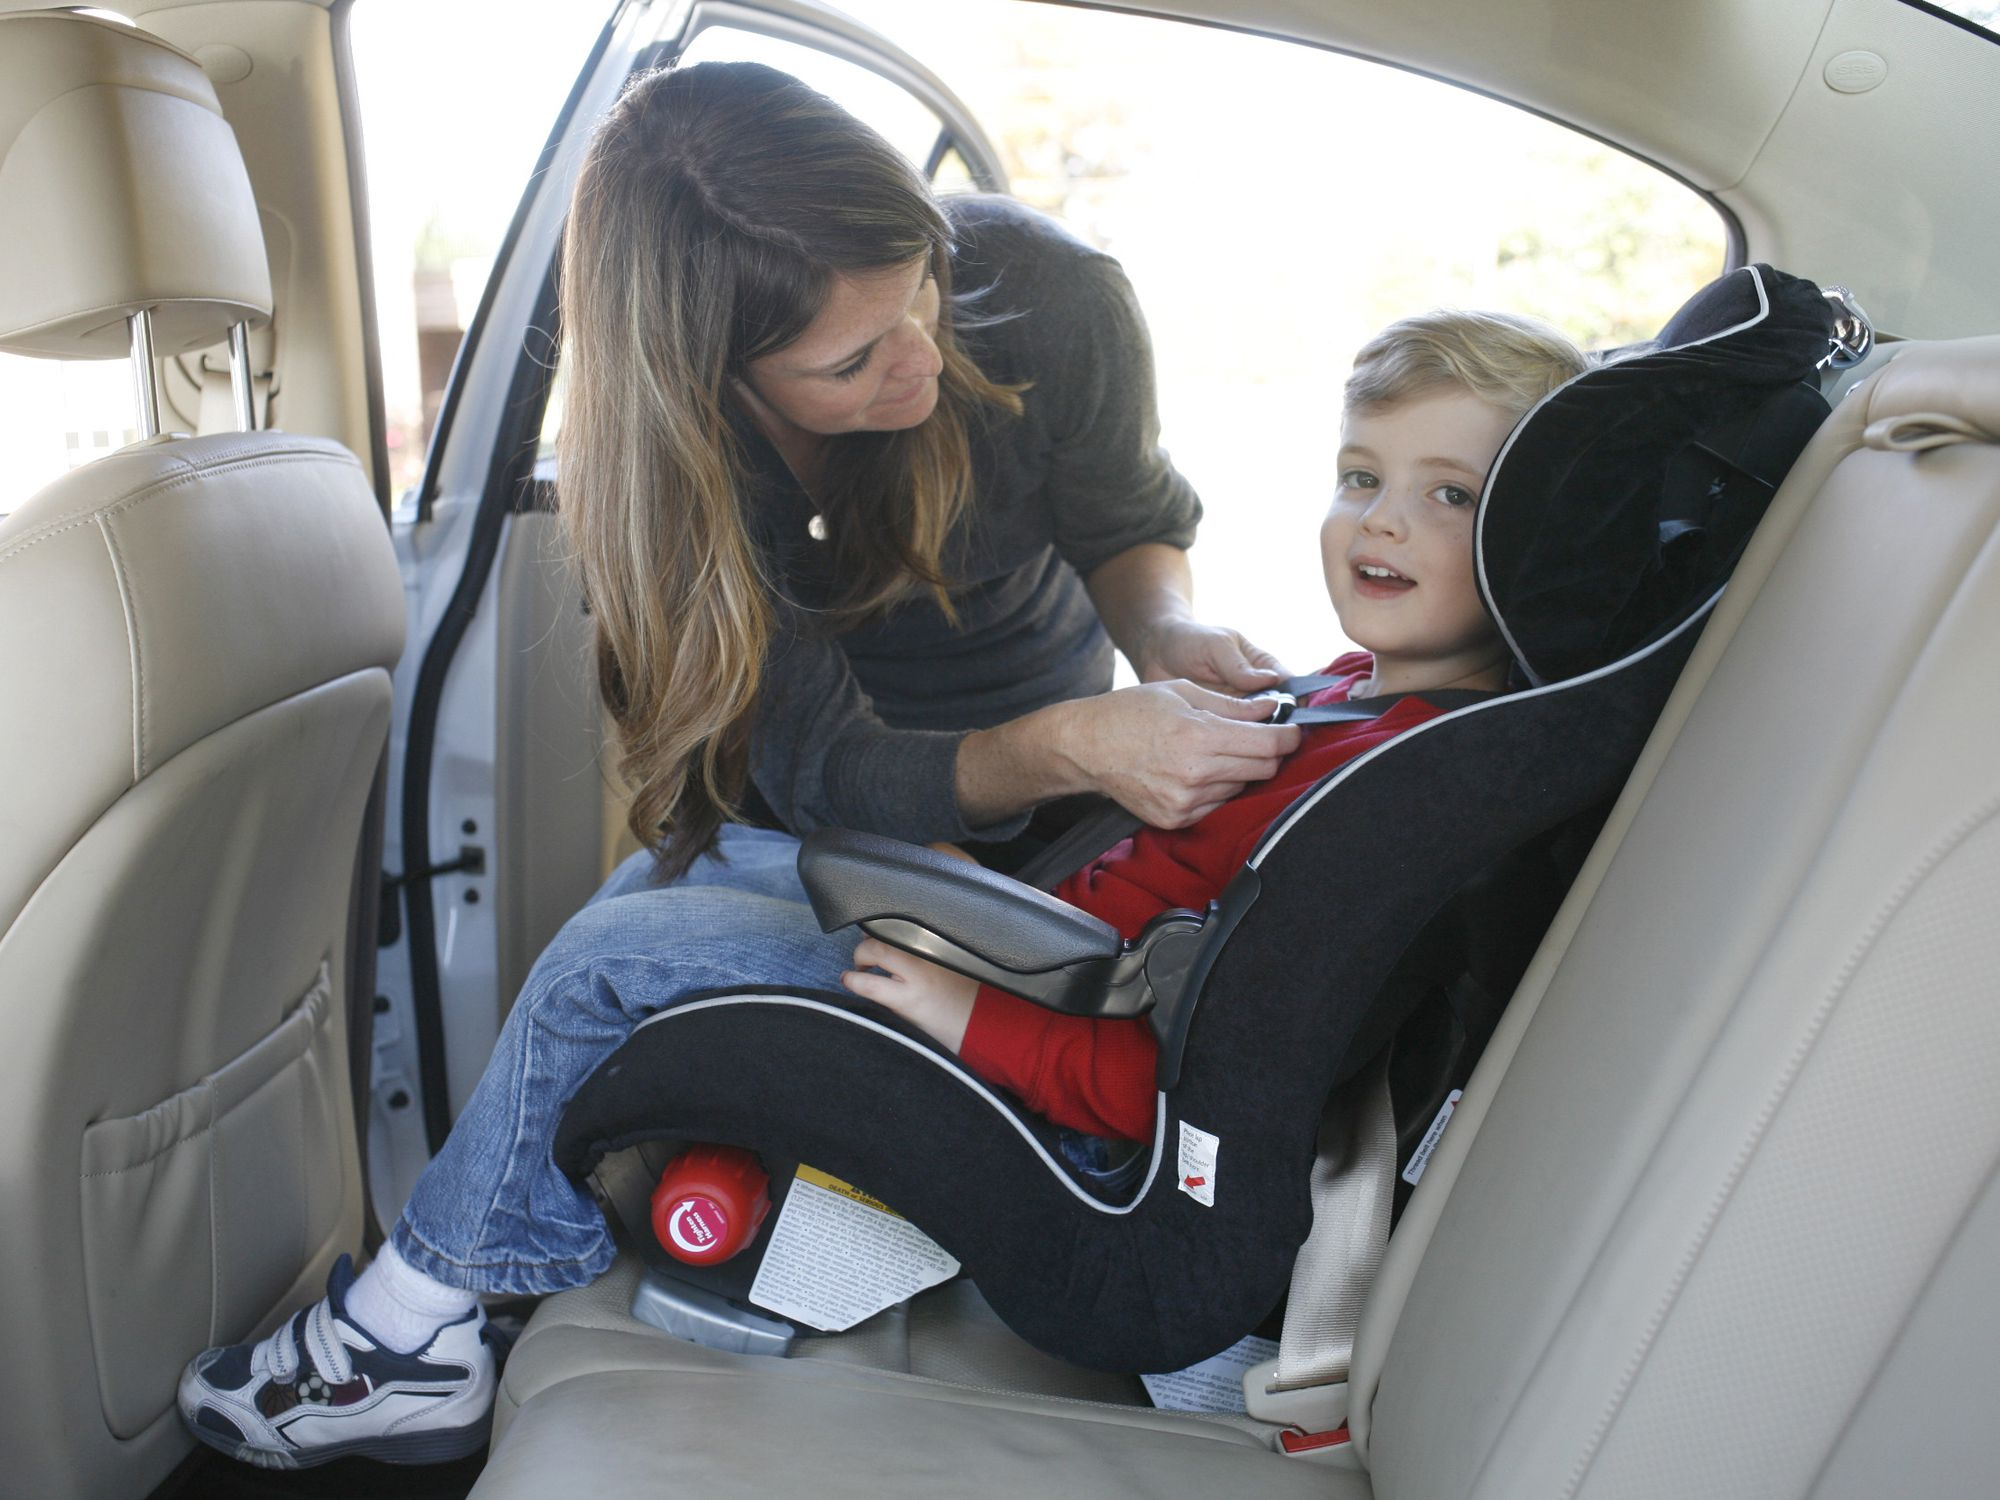 Child In A Forward Facing Car Seat, Is There A Law On Forward Facing Car Seats